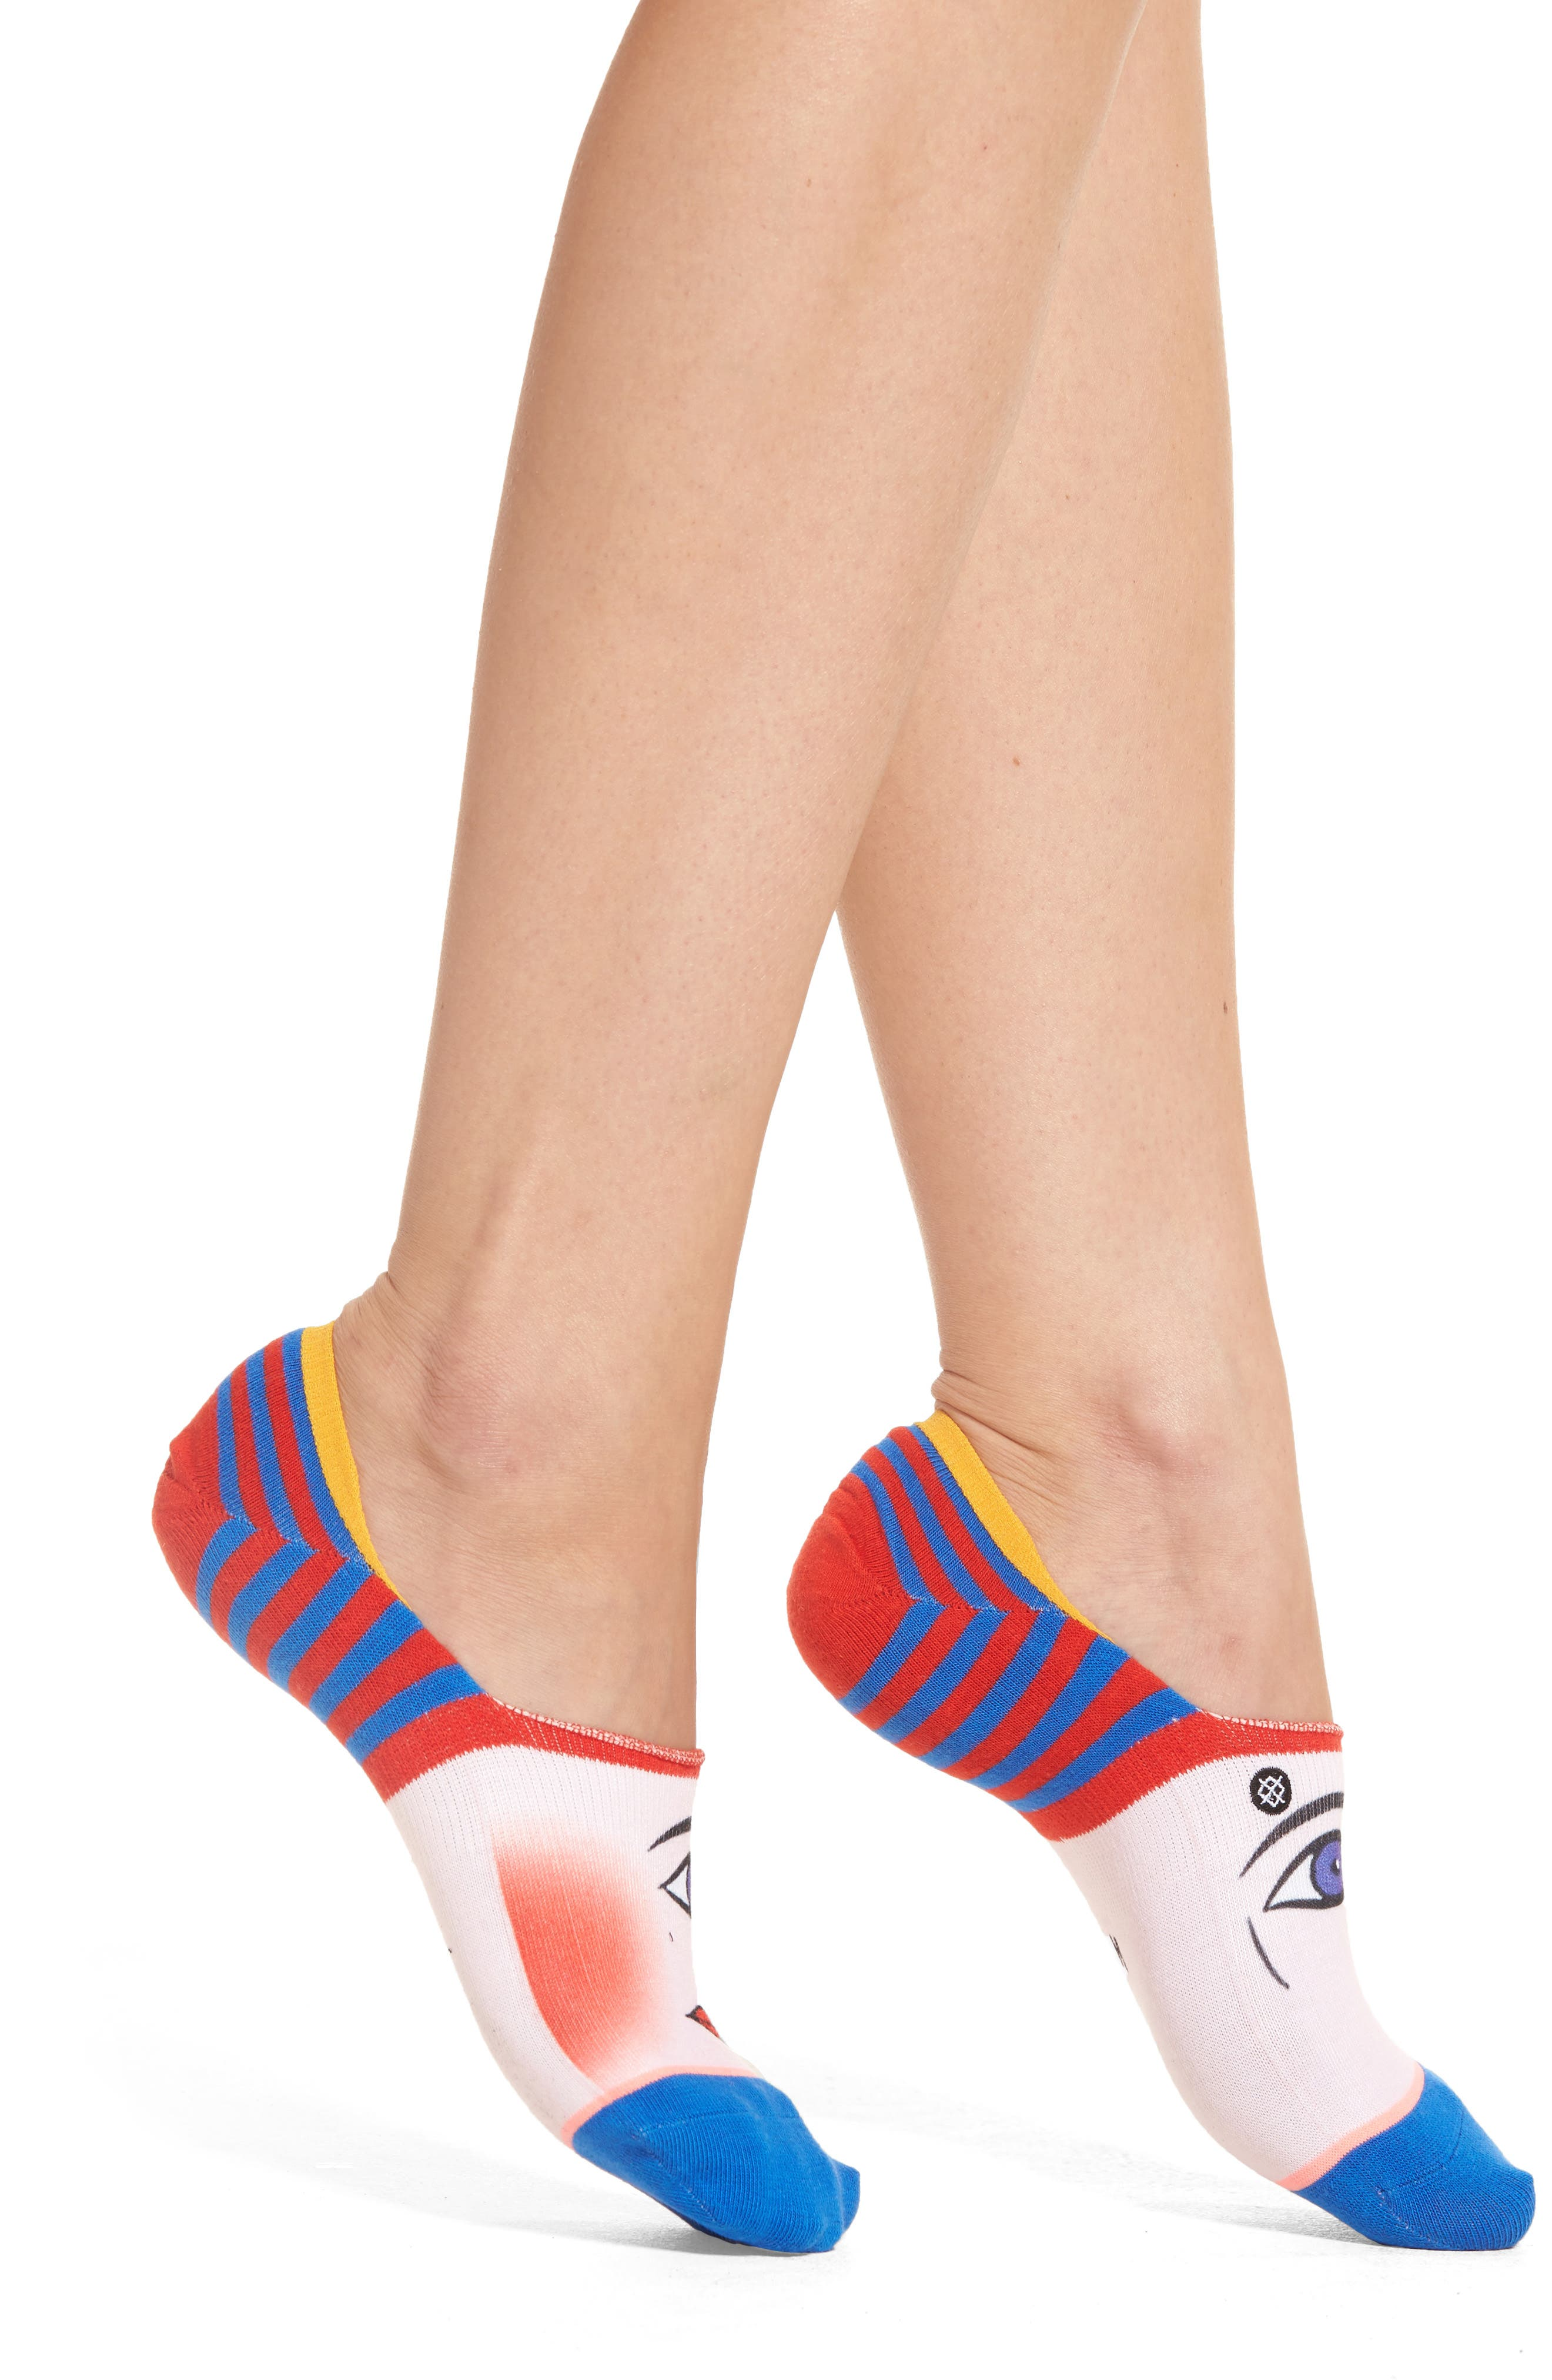 Alternate Image 2  - Stance x Libertine Head Over Heels Super Invisible Socks